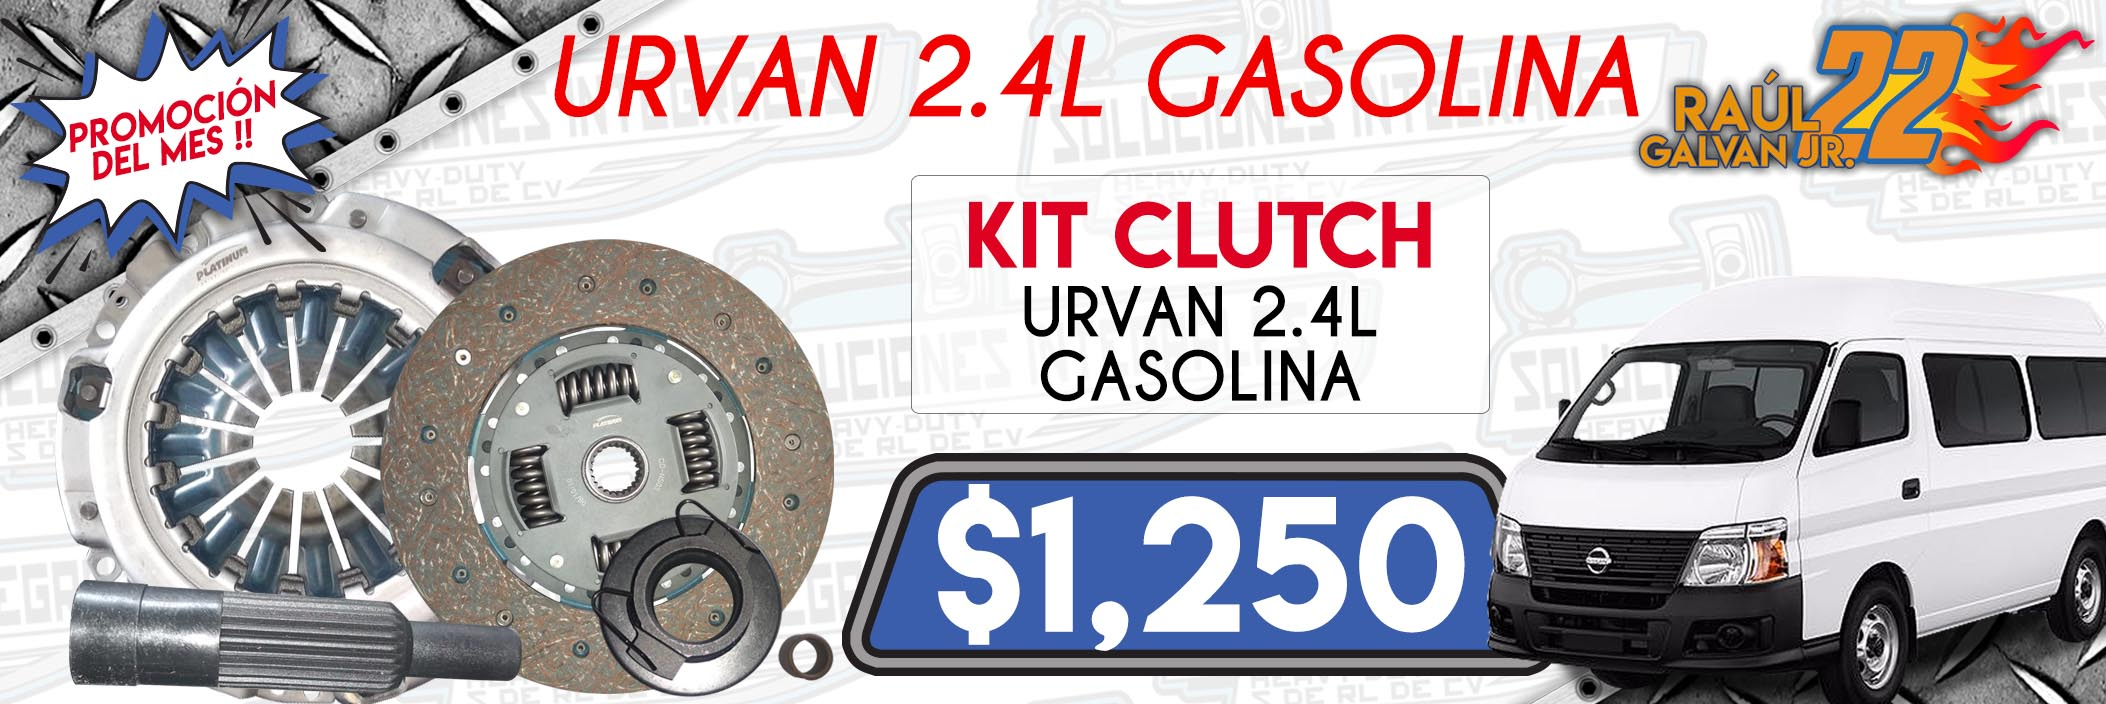 kit clutch urvan 2.4l gasolina